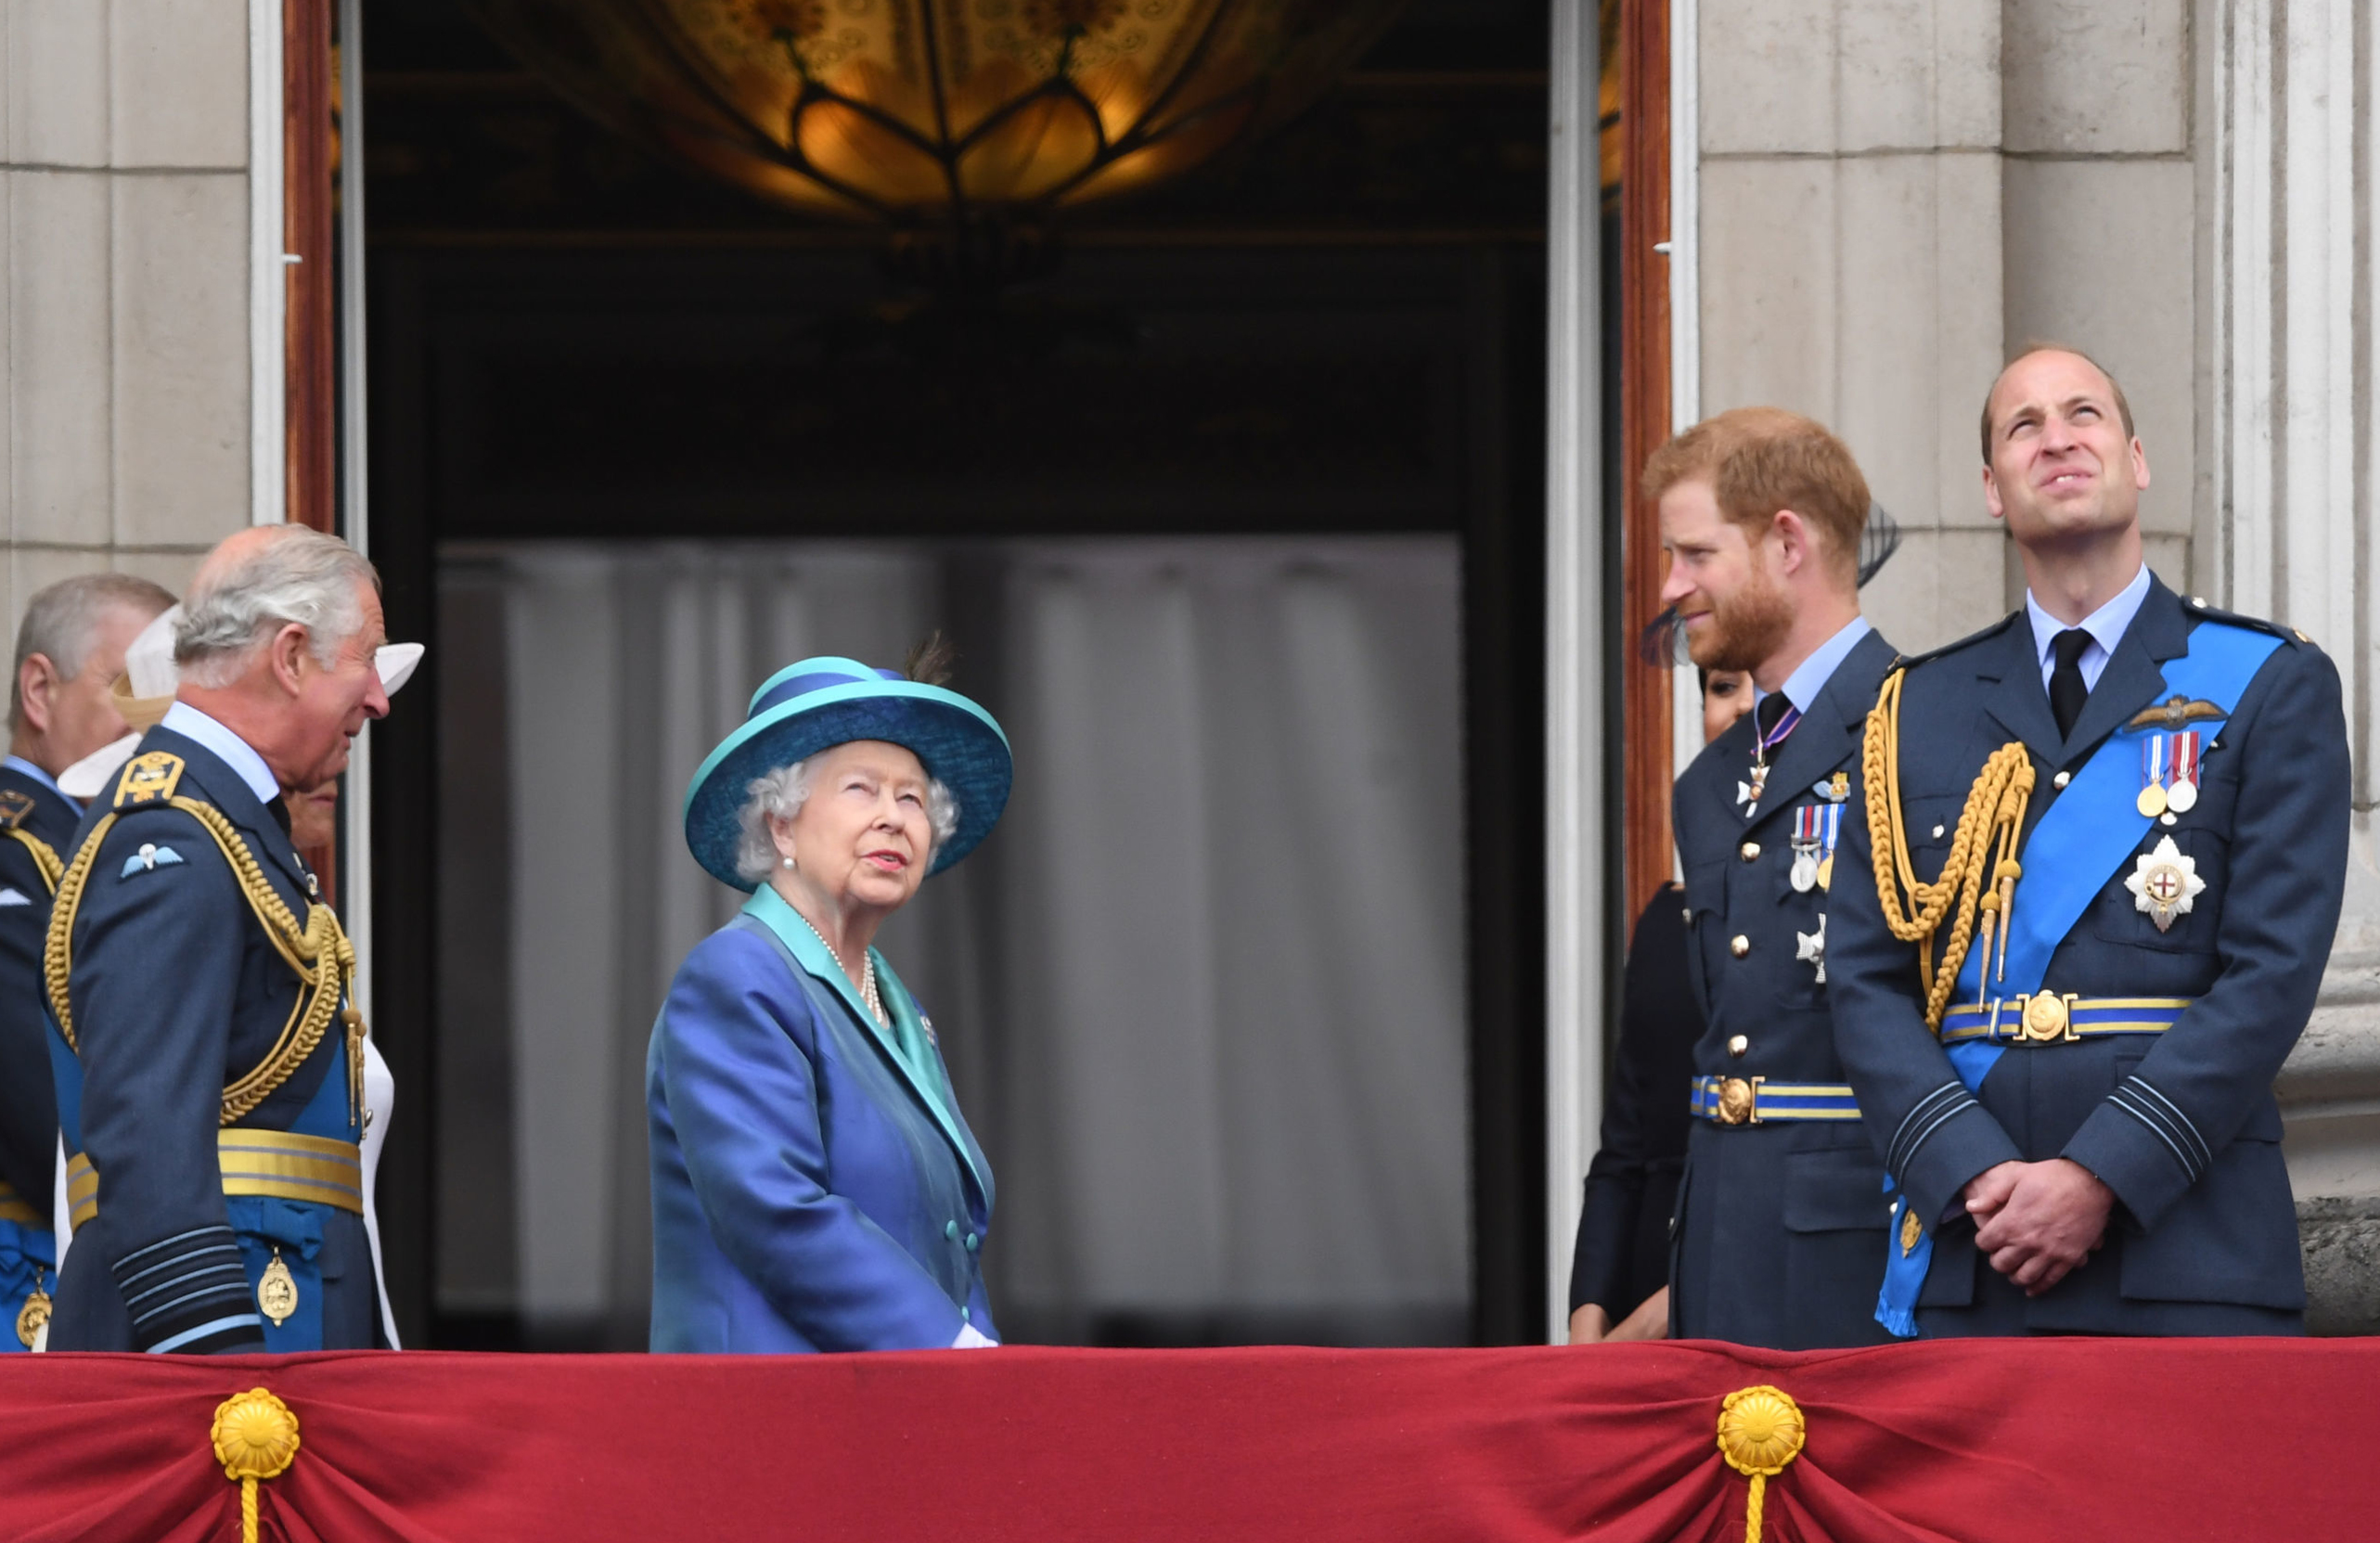 File photo dated 10/07/18 of (left to right)the Prince of Wales, Queen Elizabeth II, the Duke of Sussex and the Duke of Cambridge. The Queen will host crisis talks with senior royals and the Duke of Sussex on Monday in a bid to find a solution to Meghan and Harry's future roles.